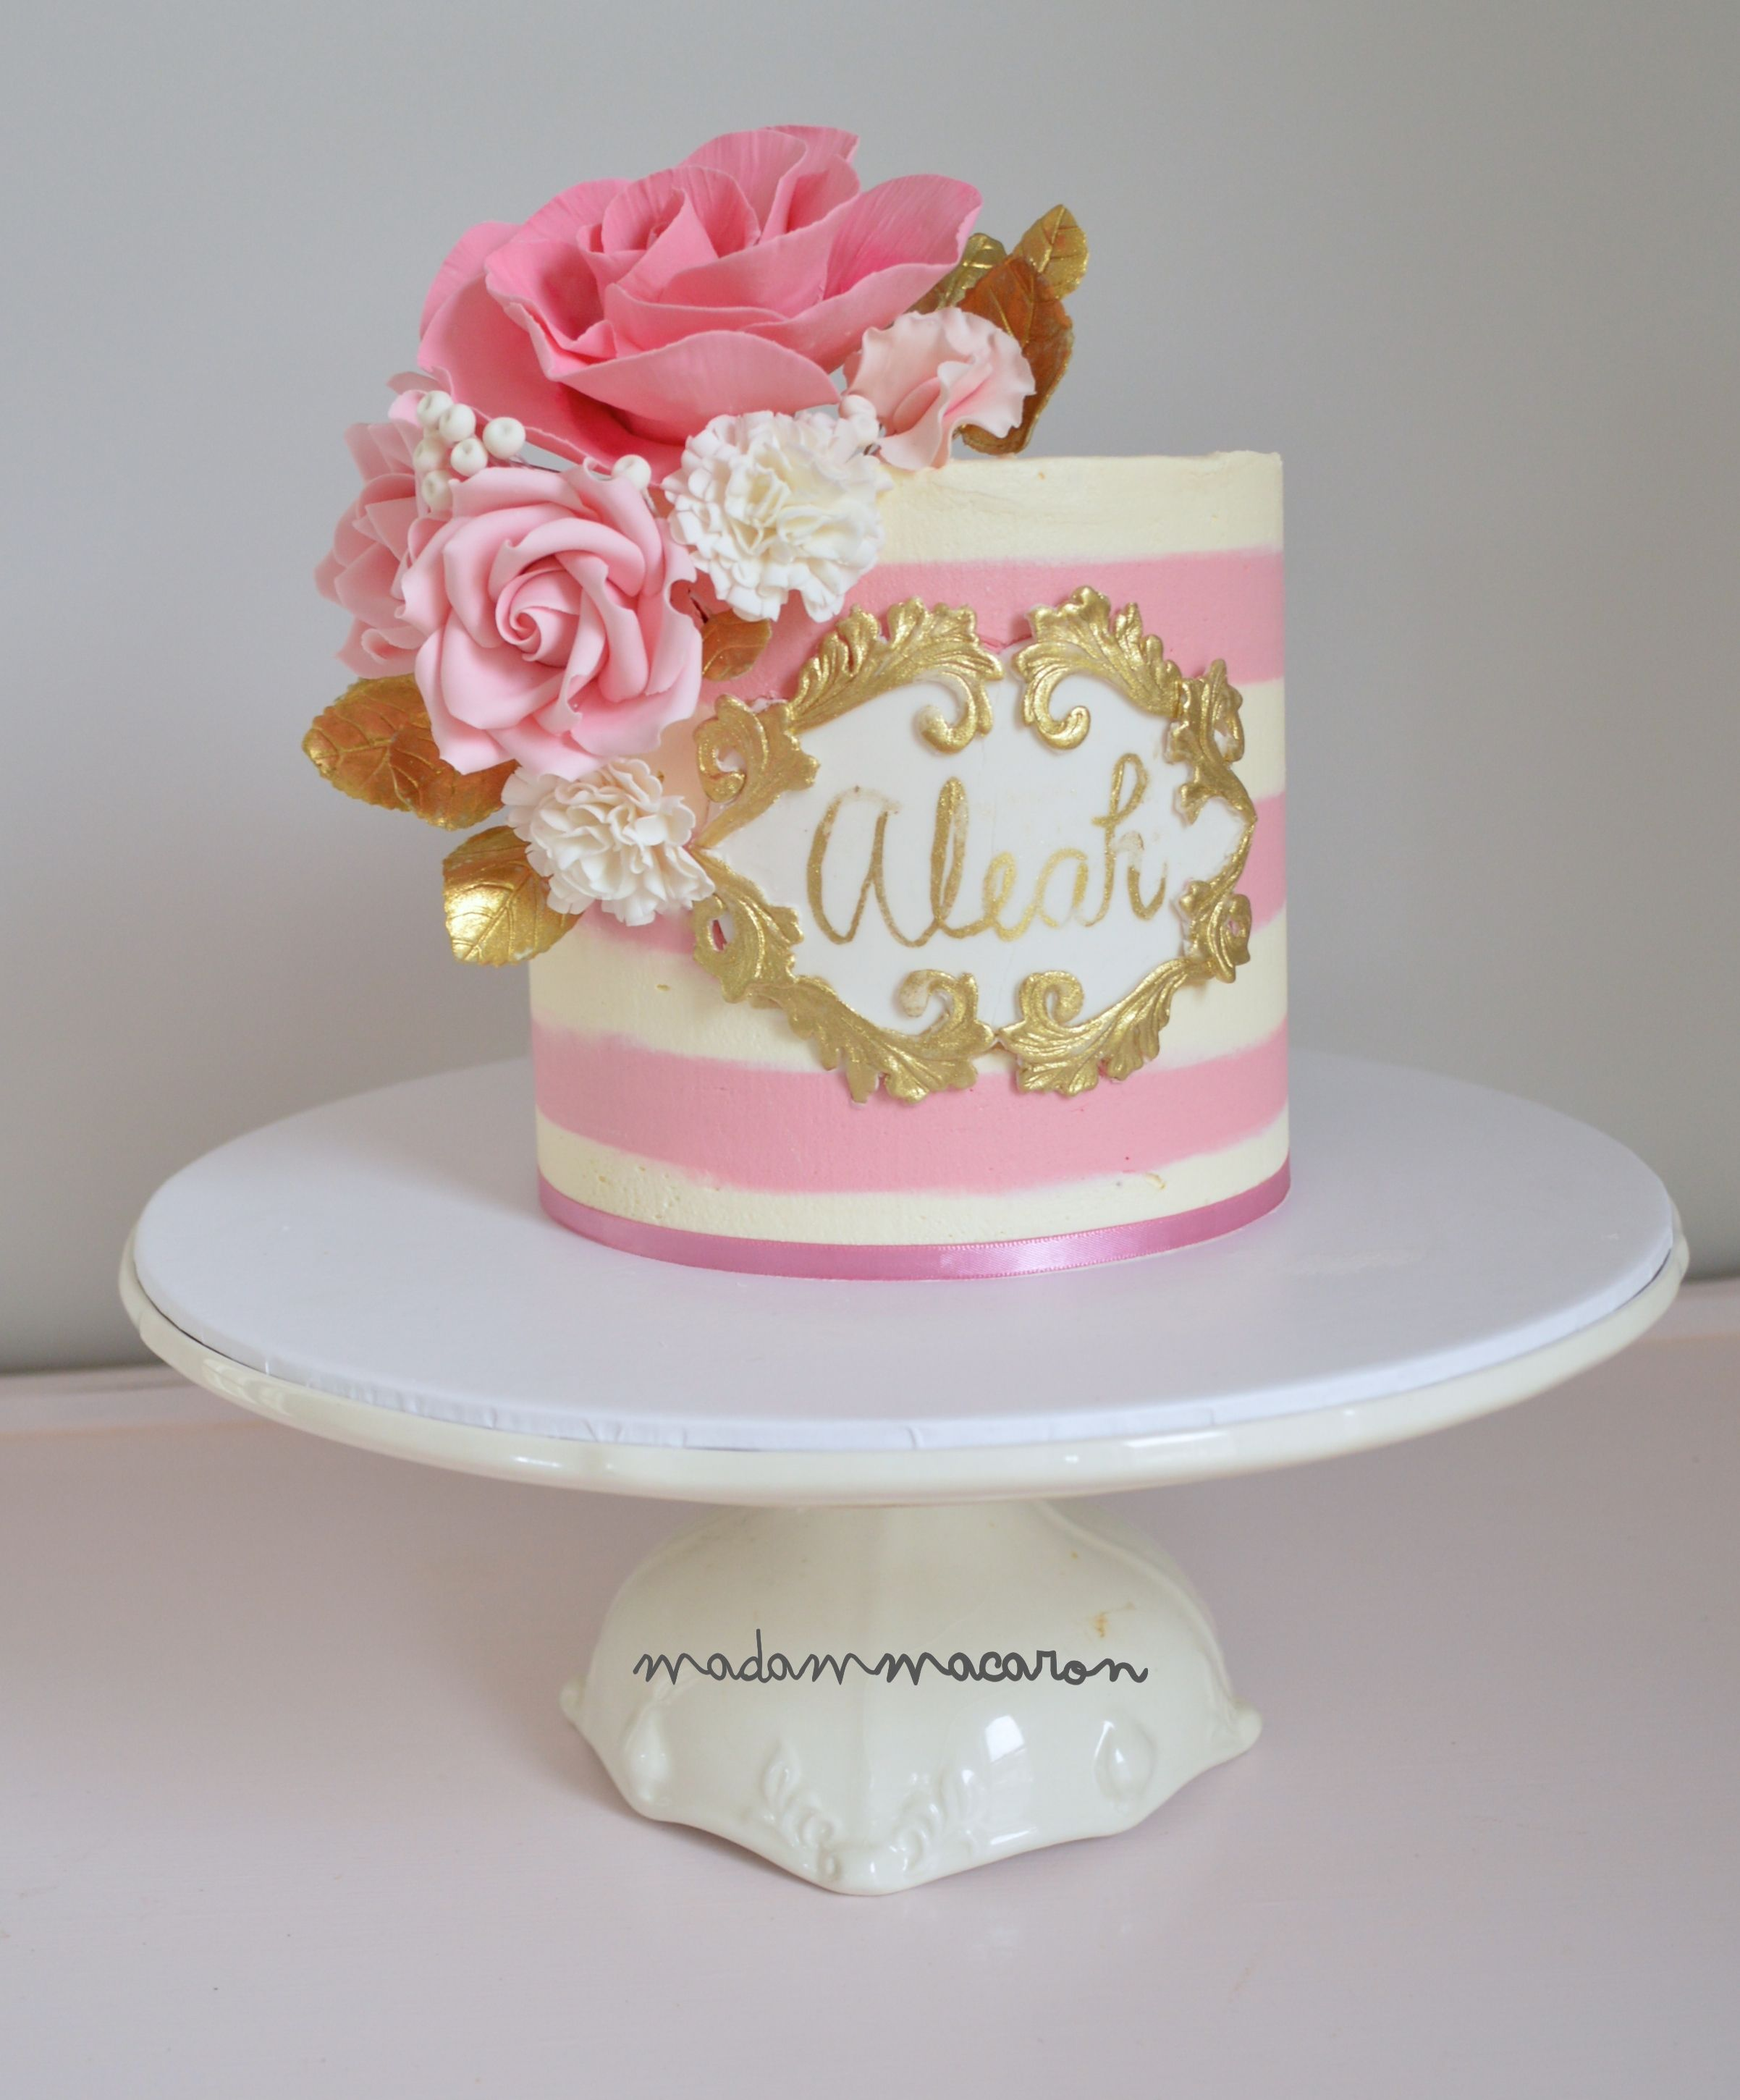 White And Pink Buttercream Striped Cake With A Hand Painted Name Plaque Gold Sugar Flowers